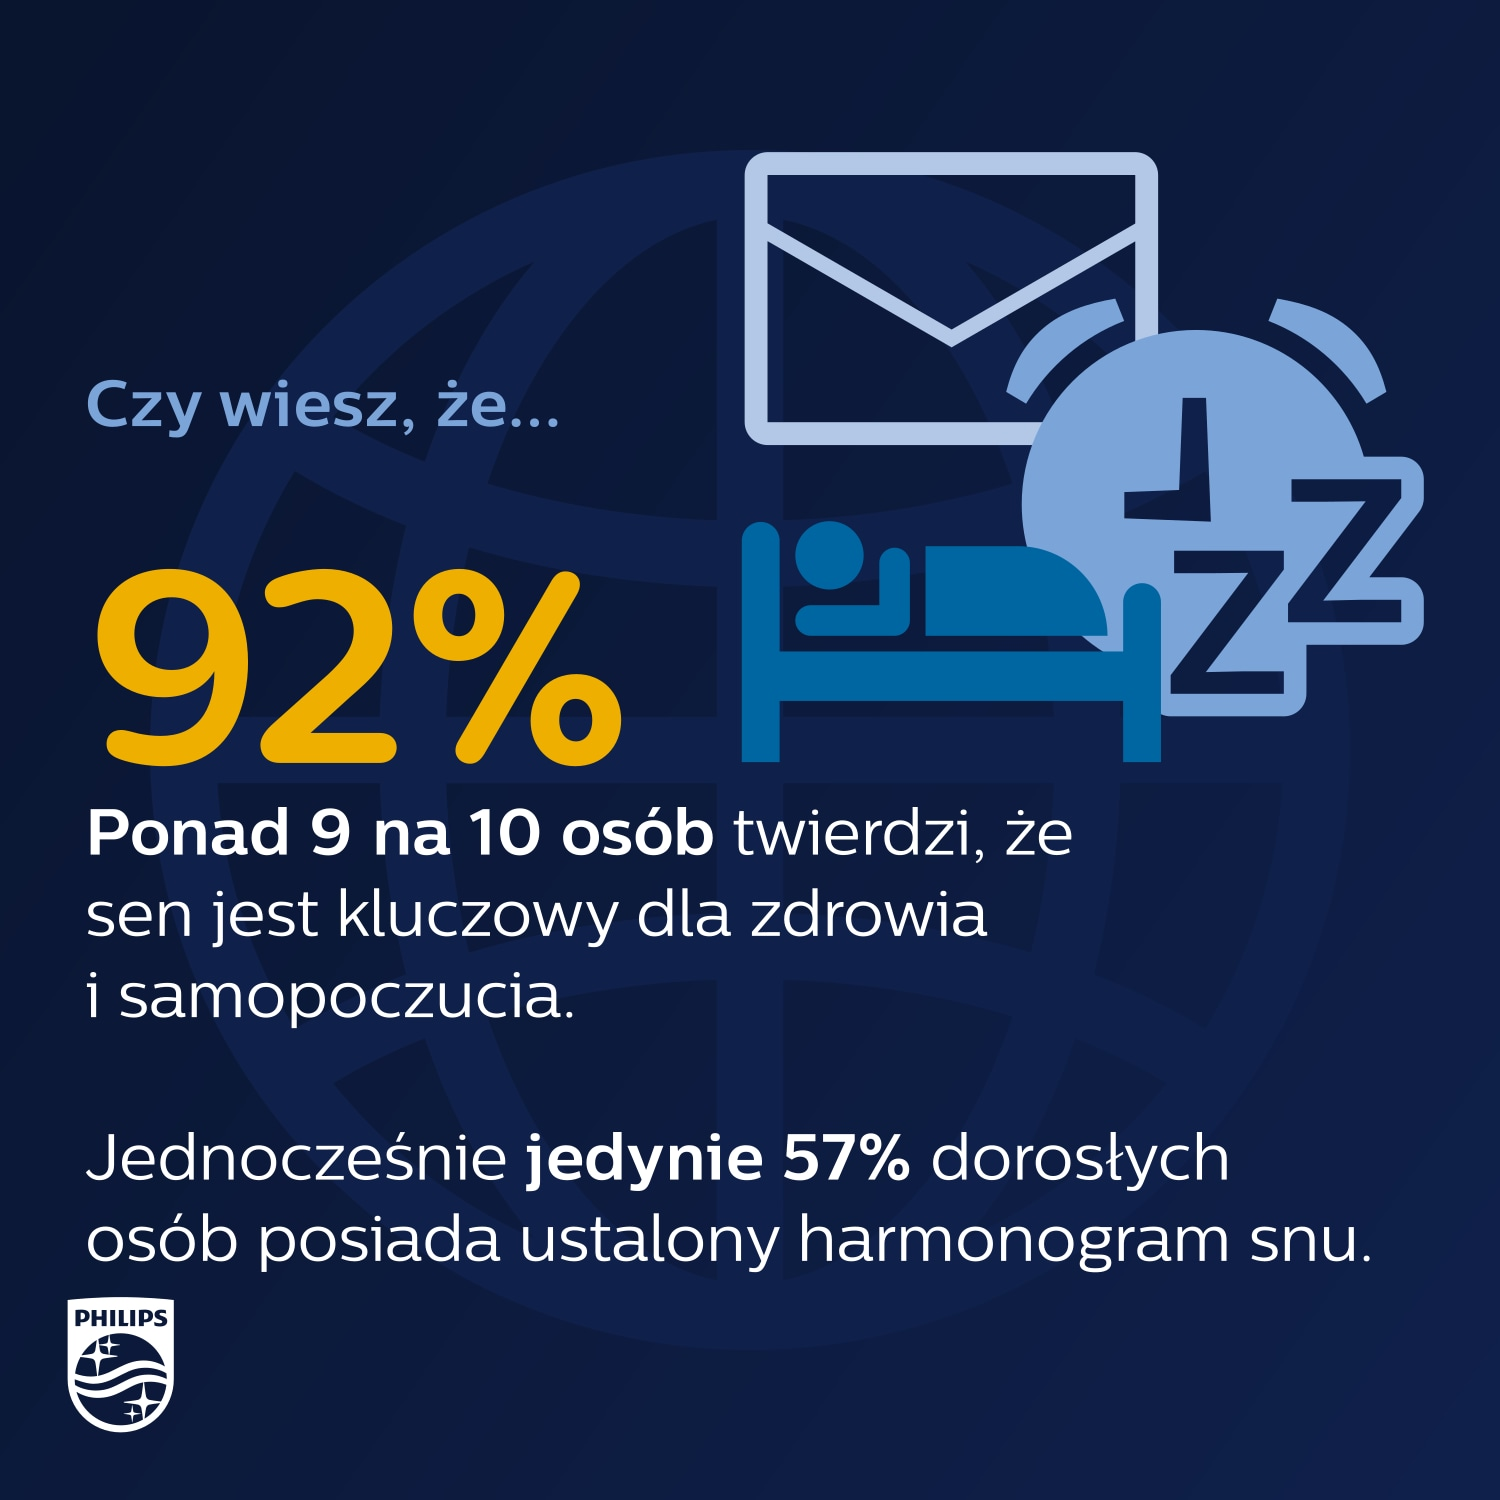 World Sleep Day Survey Results infographic 3